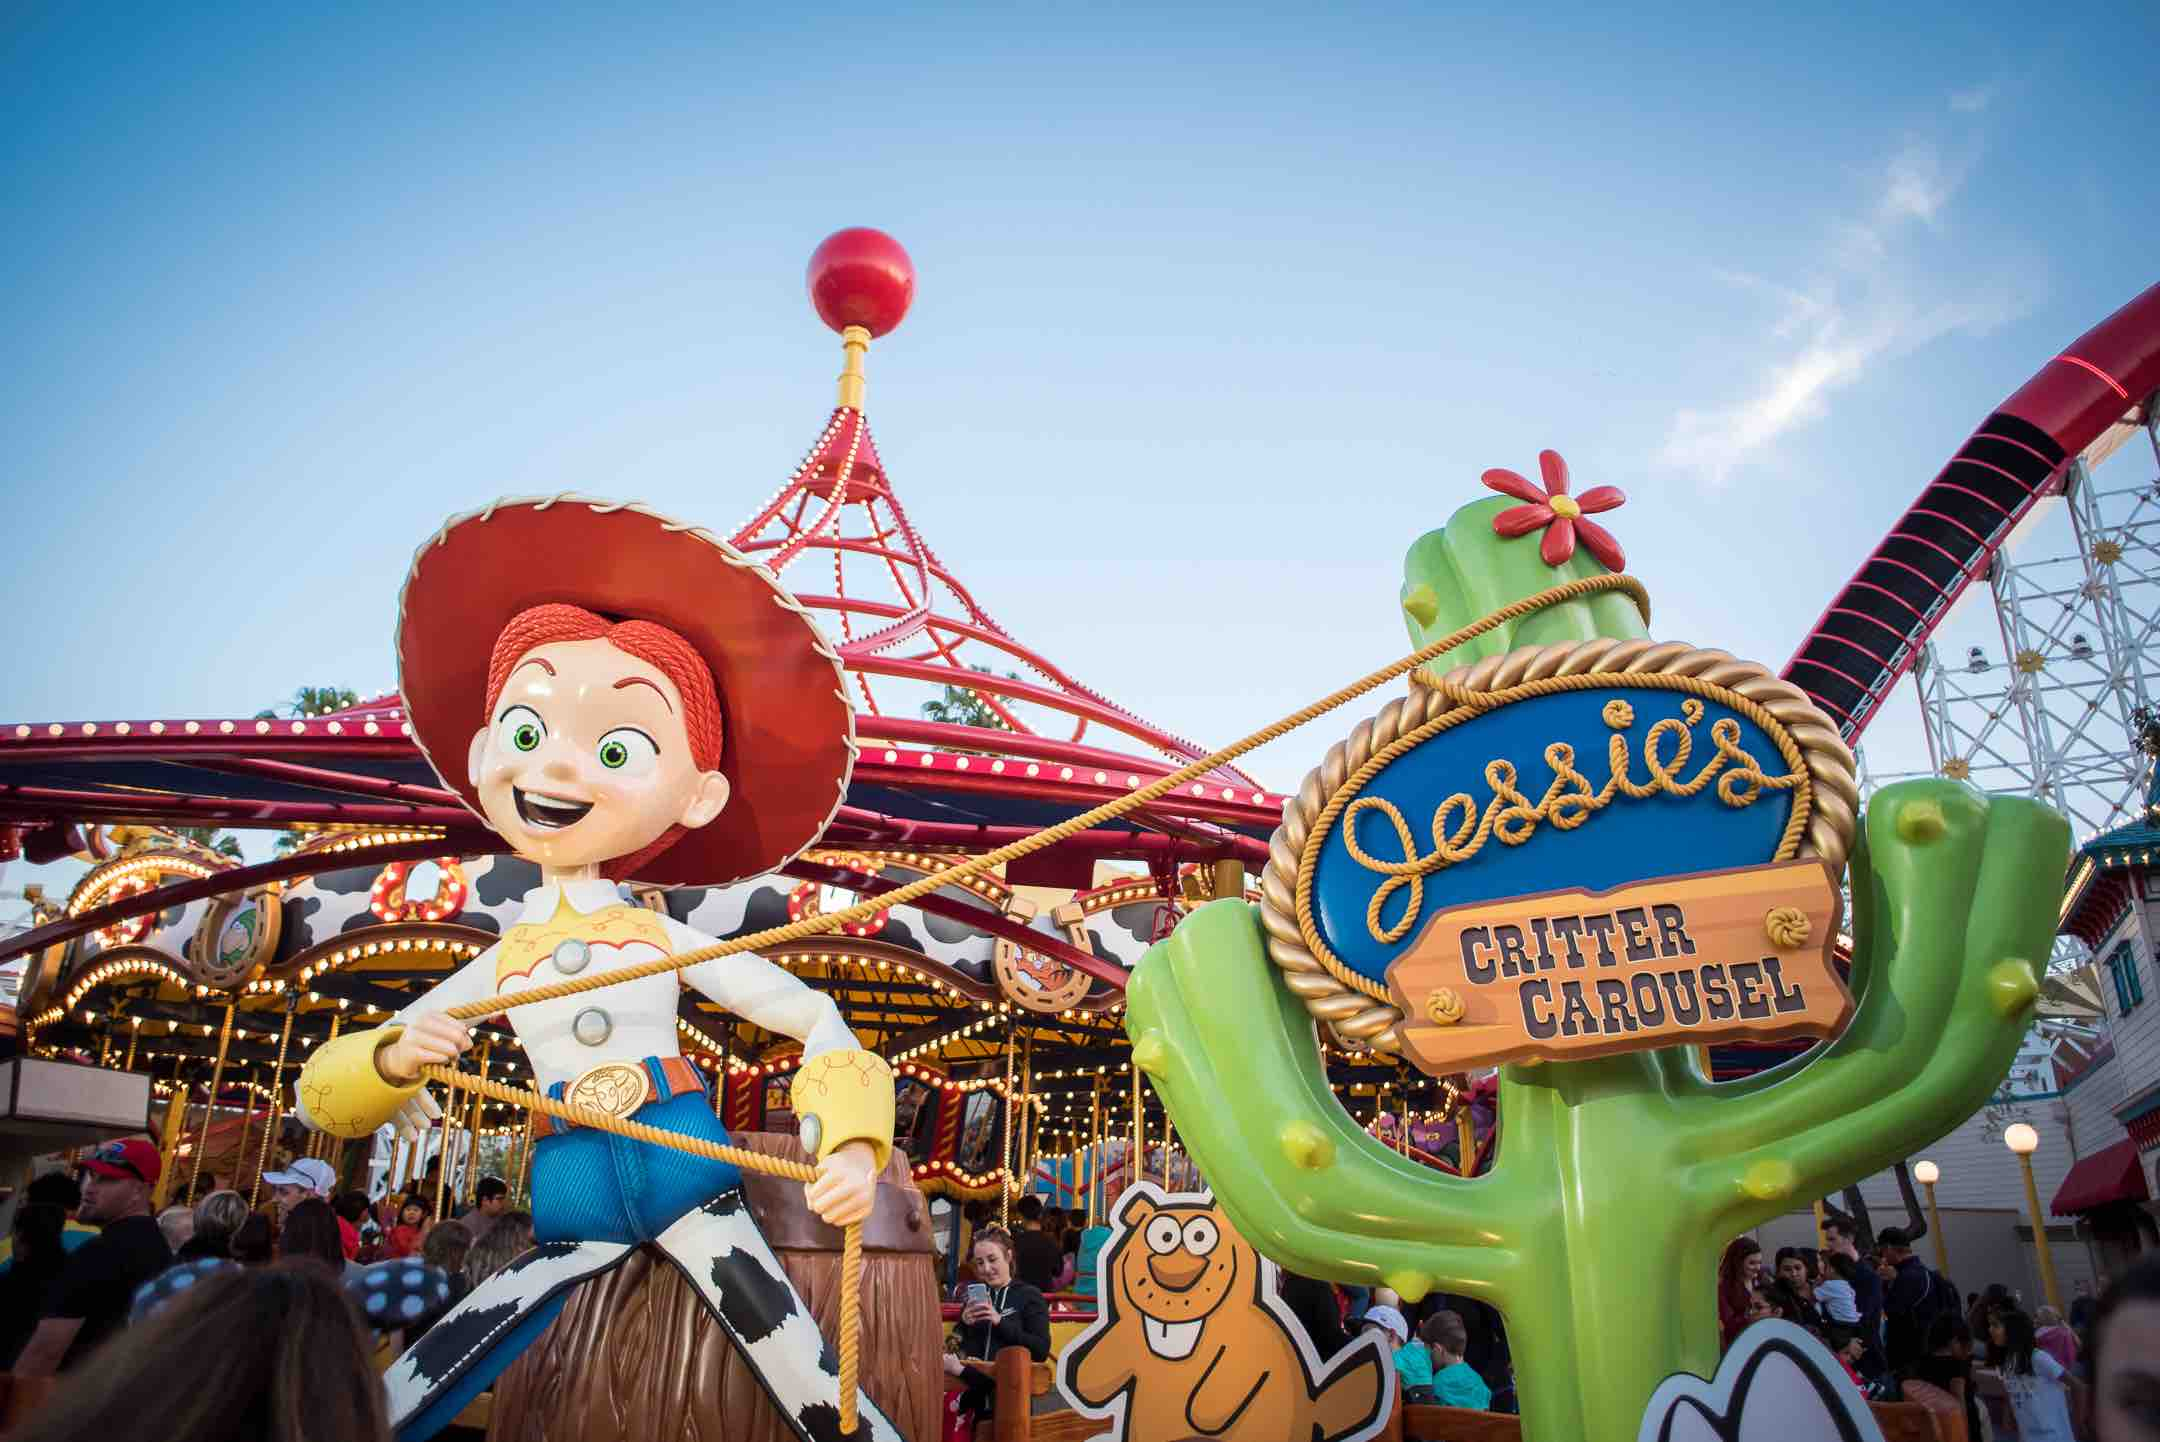 How to find Discount Disney Tickets, info featured by top US Disney blogger, Marcie and the Mouse: Jessie's Critter Carousel is a newer attraction on Pixar Pier at Disney California Adventure